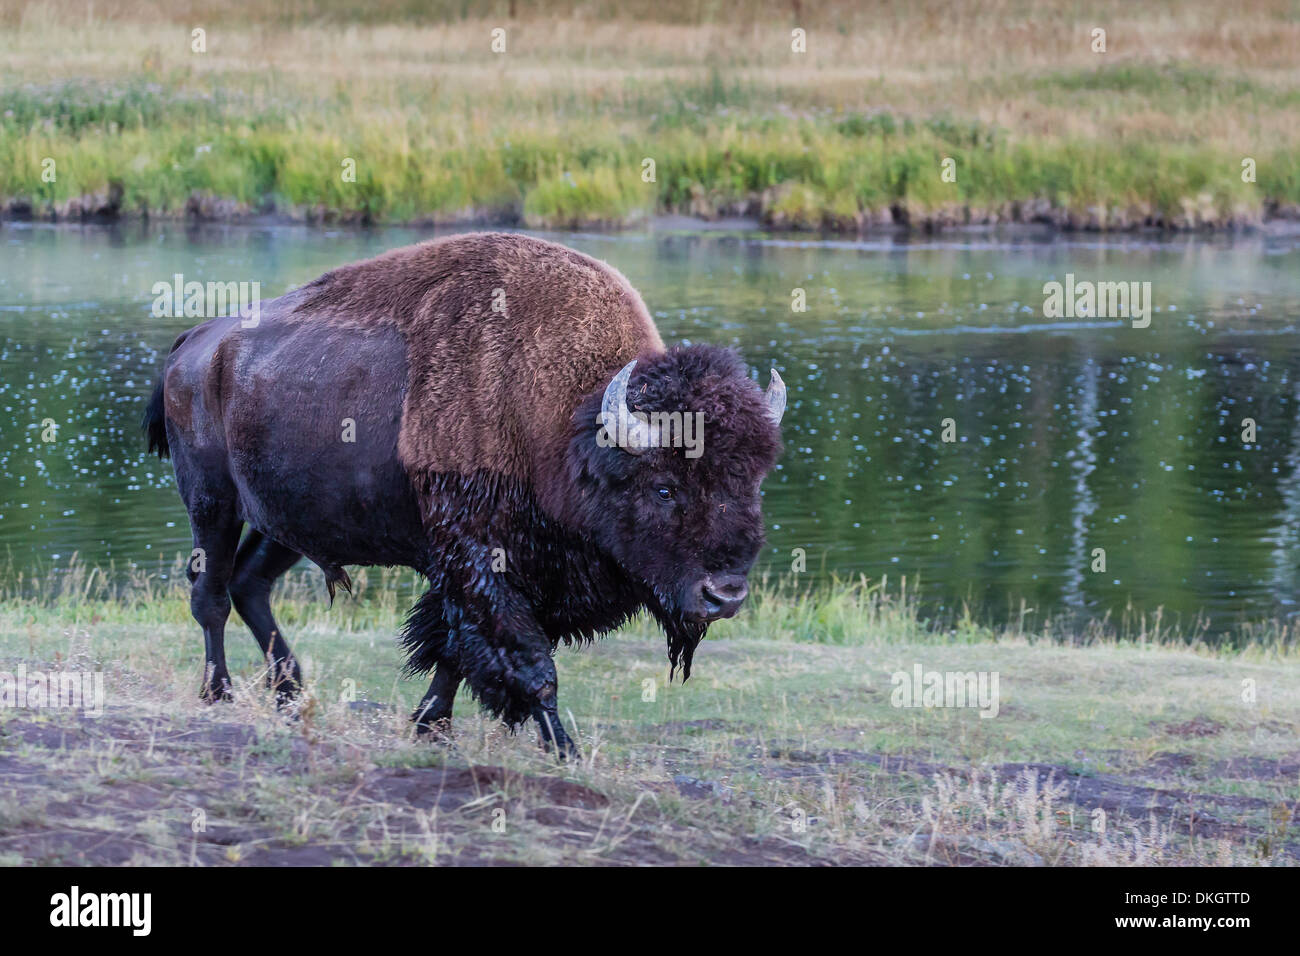 Lone bison (buffalo) (Bison bison) on the move in Yellowstone National Park, UNESCO World Heritage Site, Wyoming, USA - Stock Image